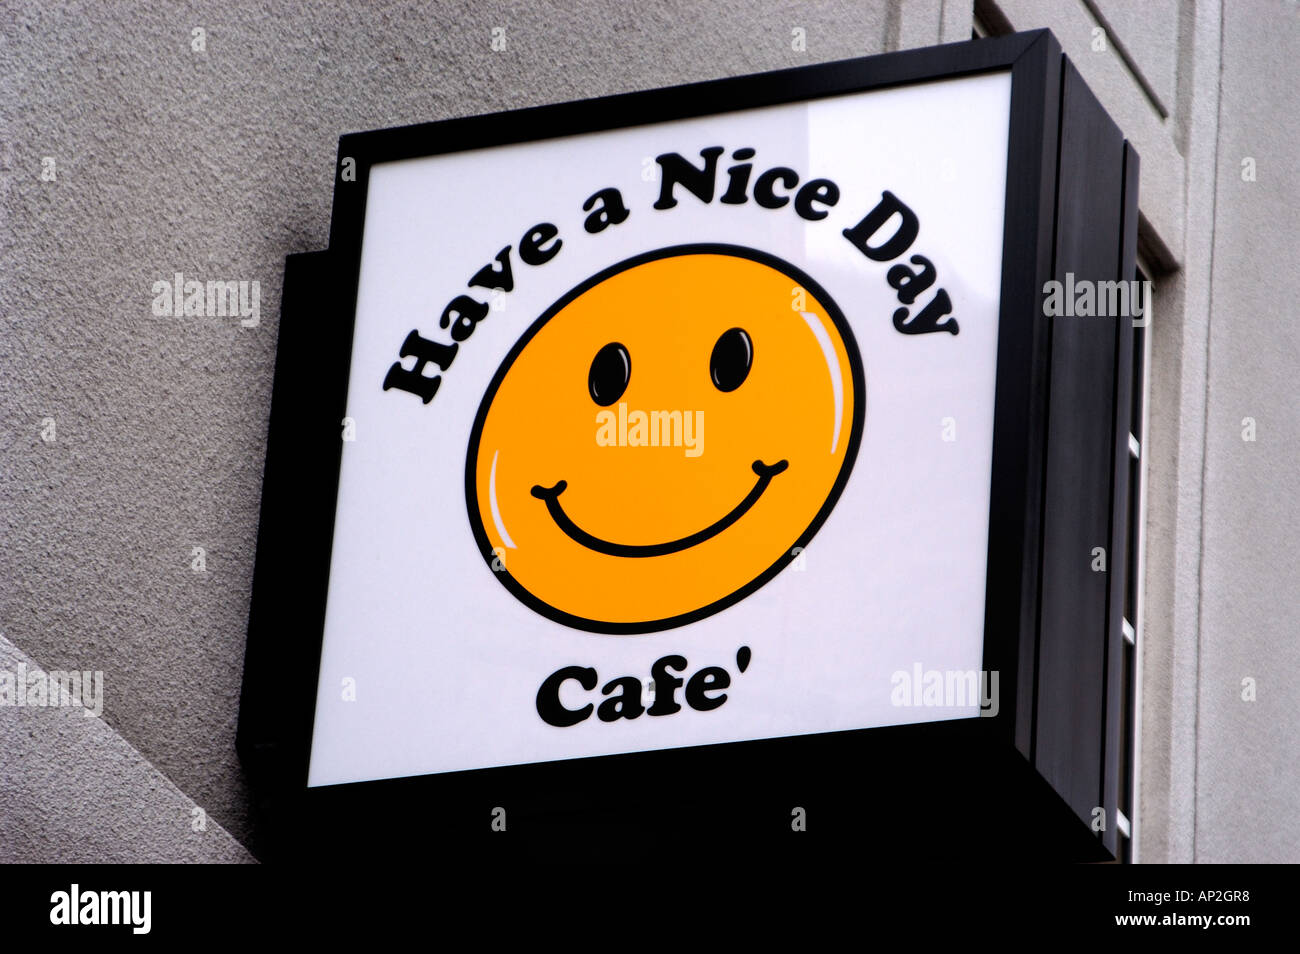 Sign on building Have a Nice Day Cafe Stock Photo